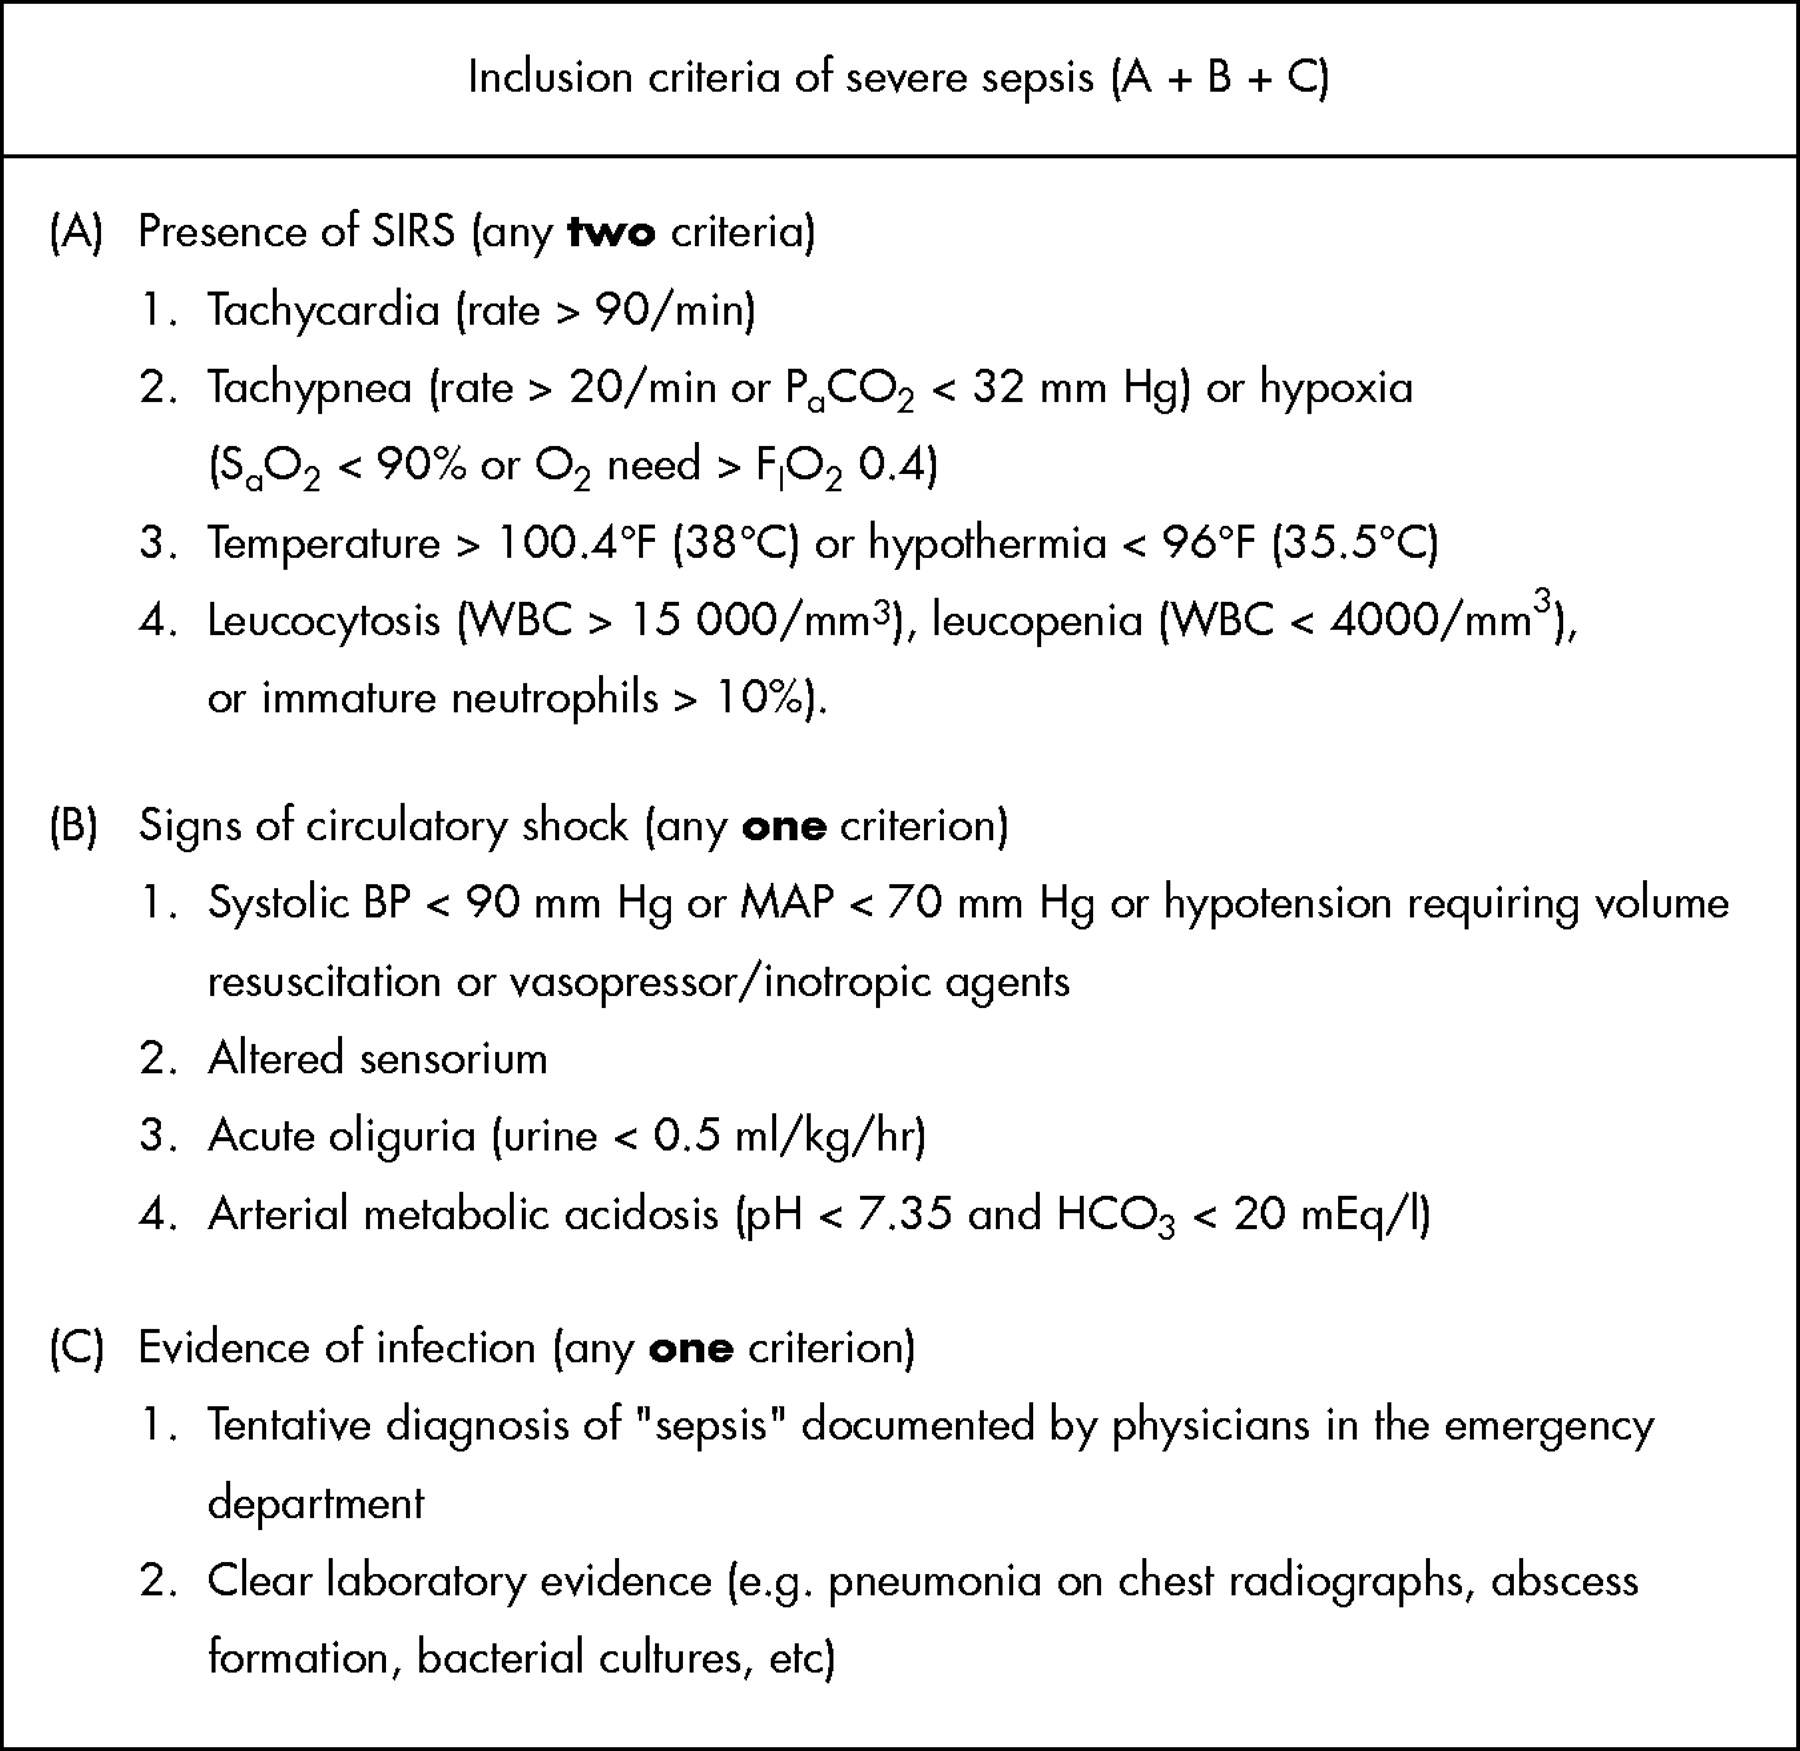 Risk stratification of severe sepsis patients in the emergency